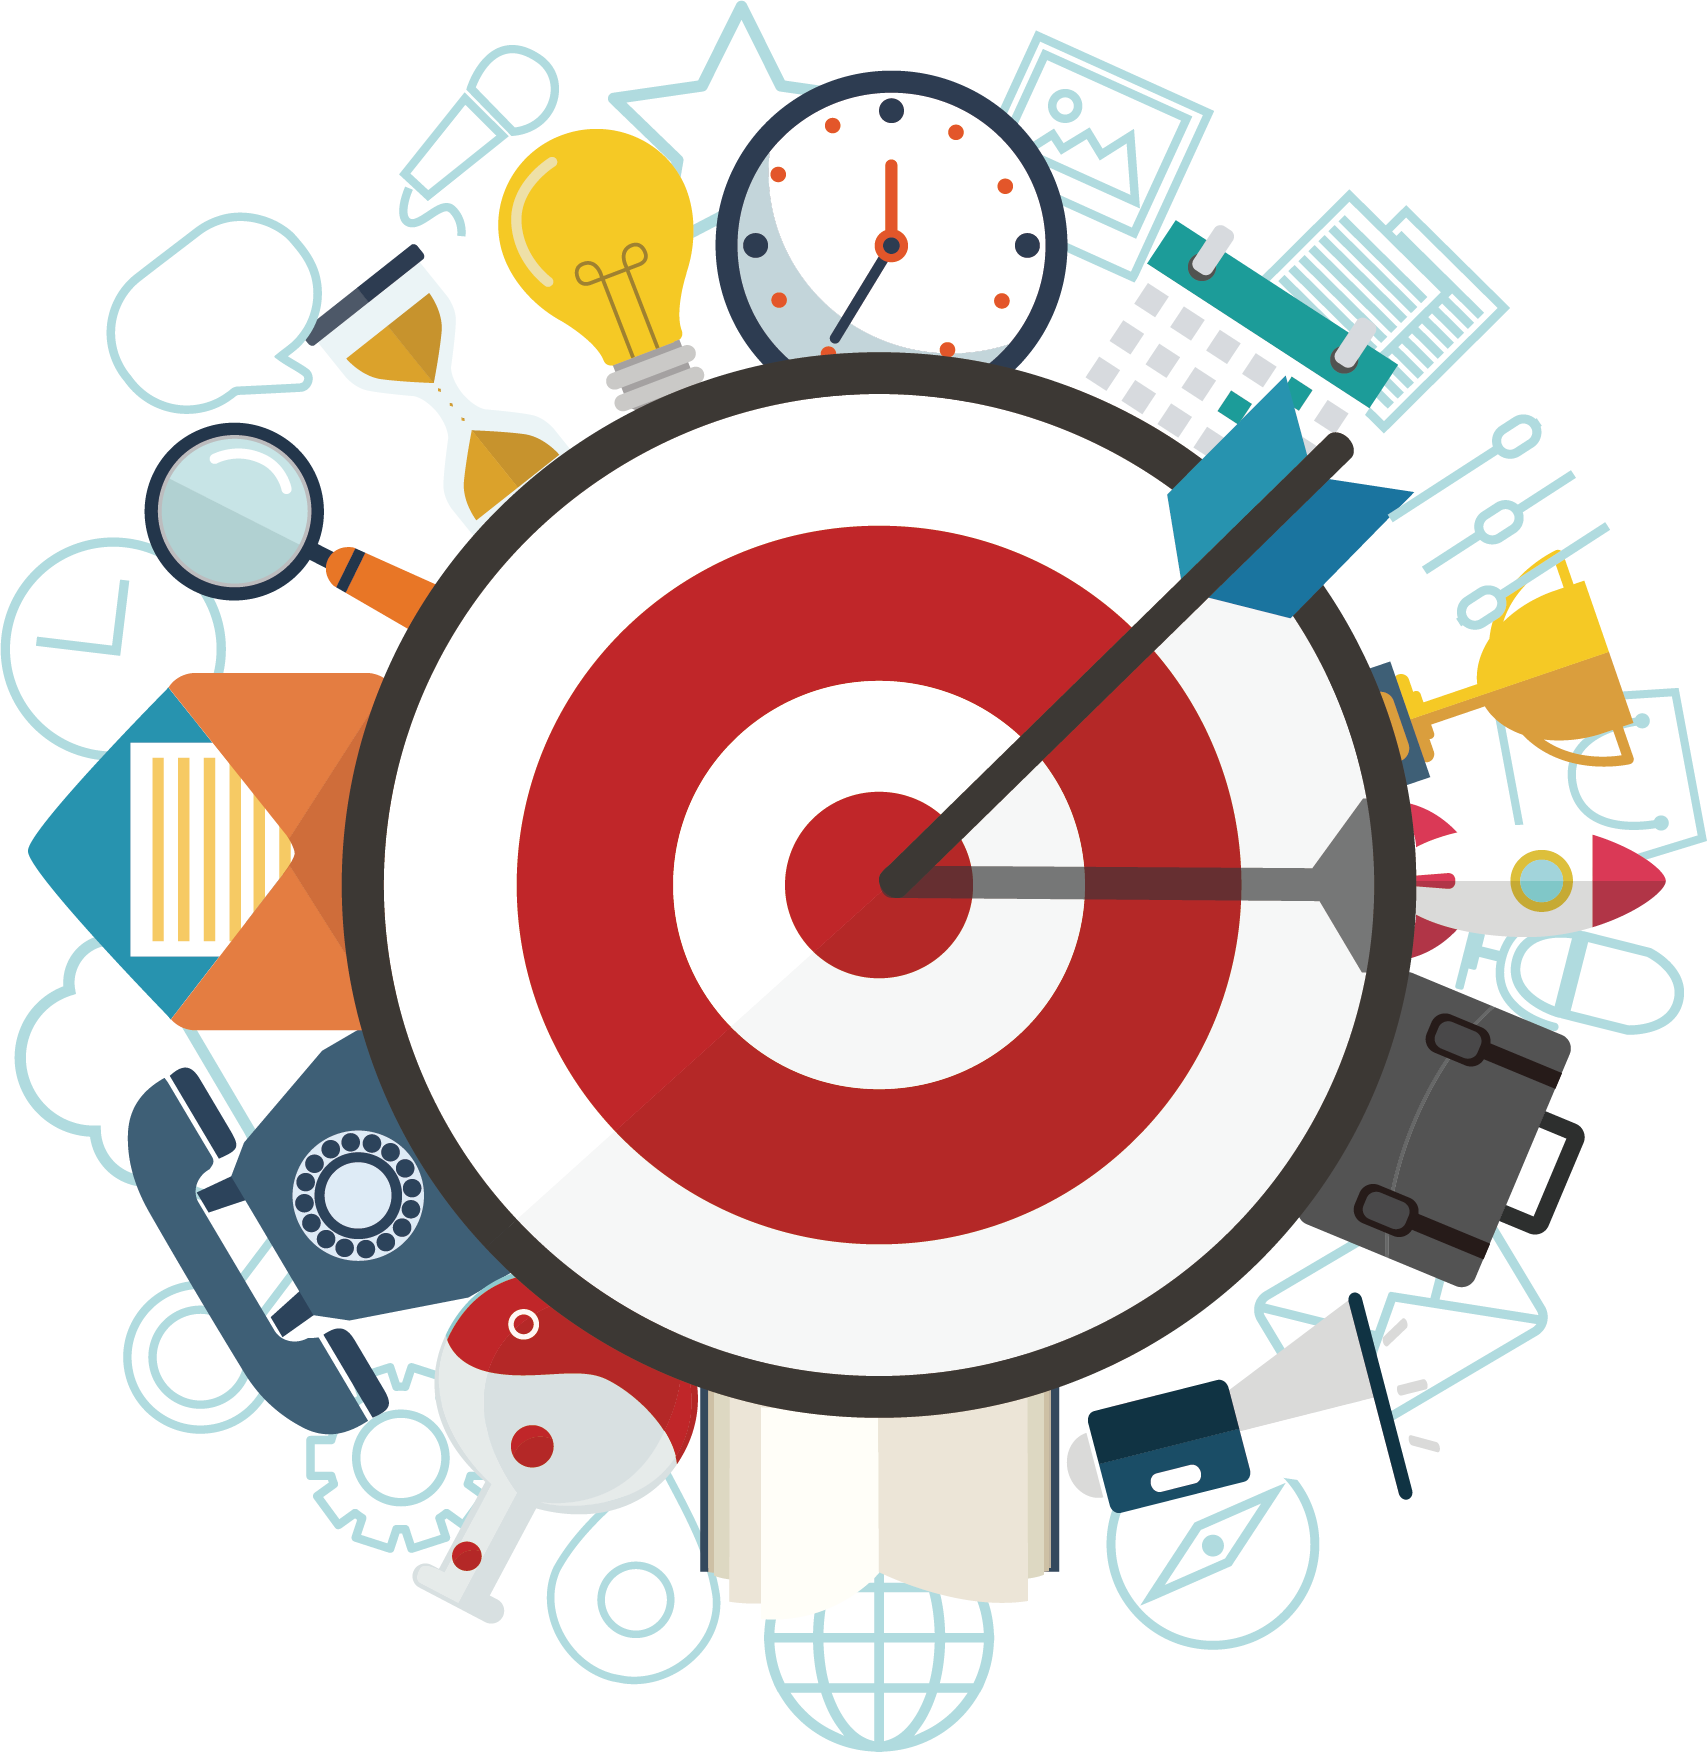 Missions clipart industry profile. Vision mission digital icon